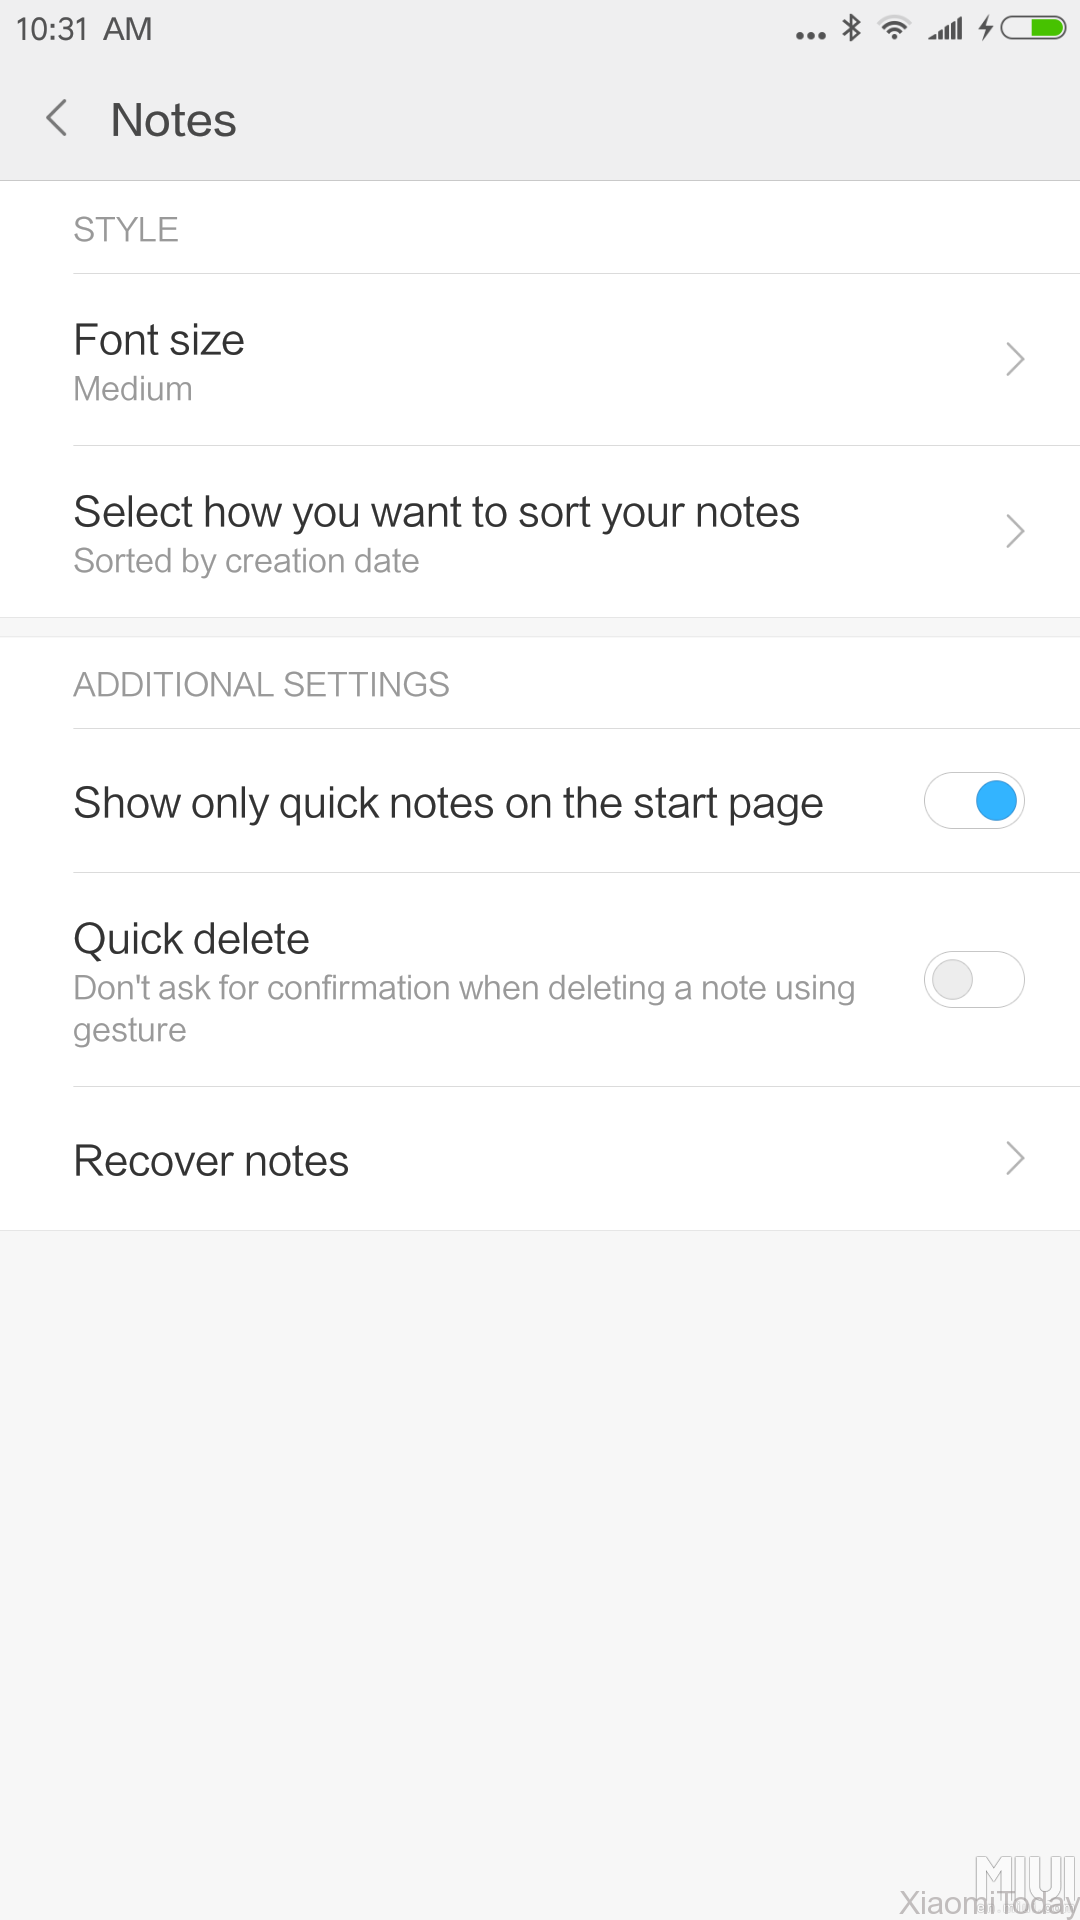 MIUI 8 China Developer ROM 6.10.27 Changelog Preview New Notes Settings